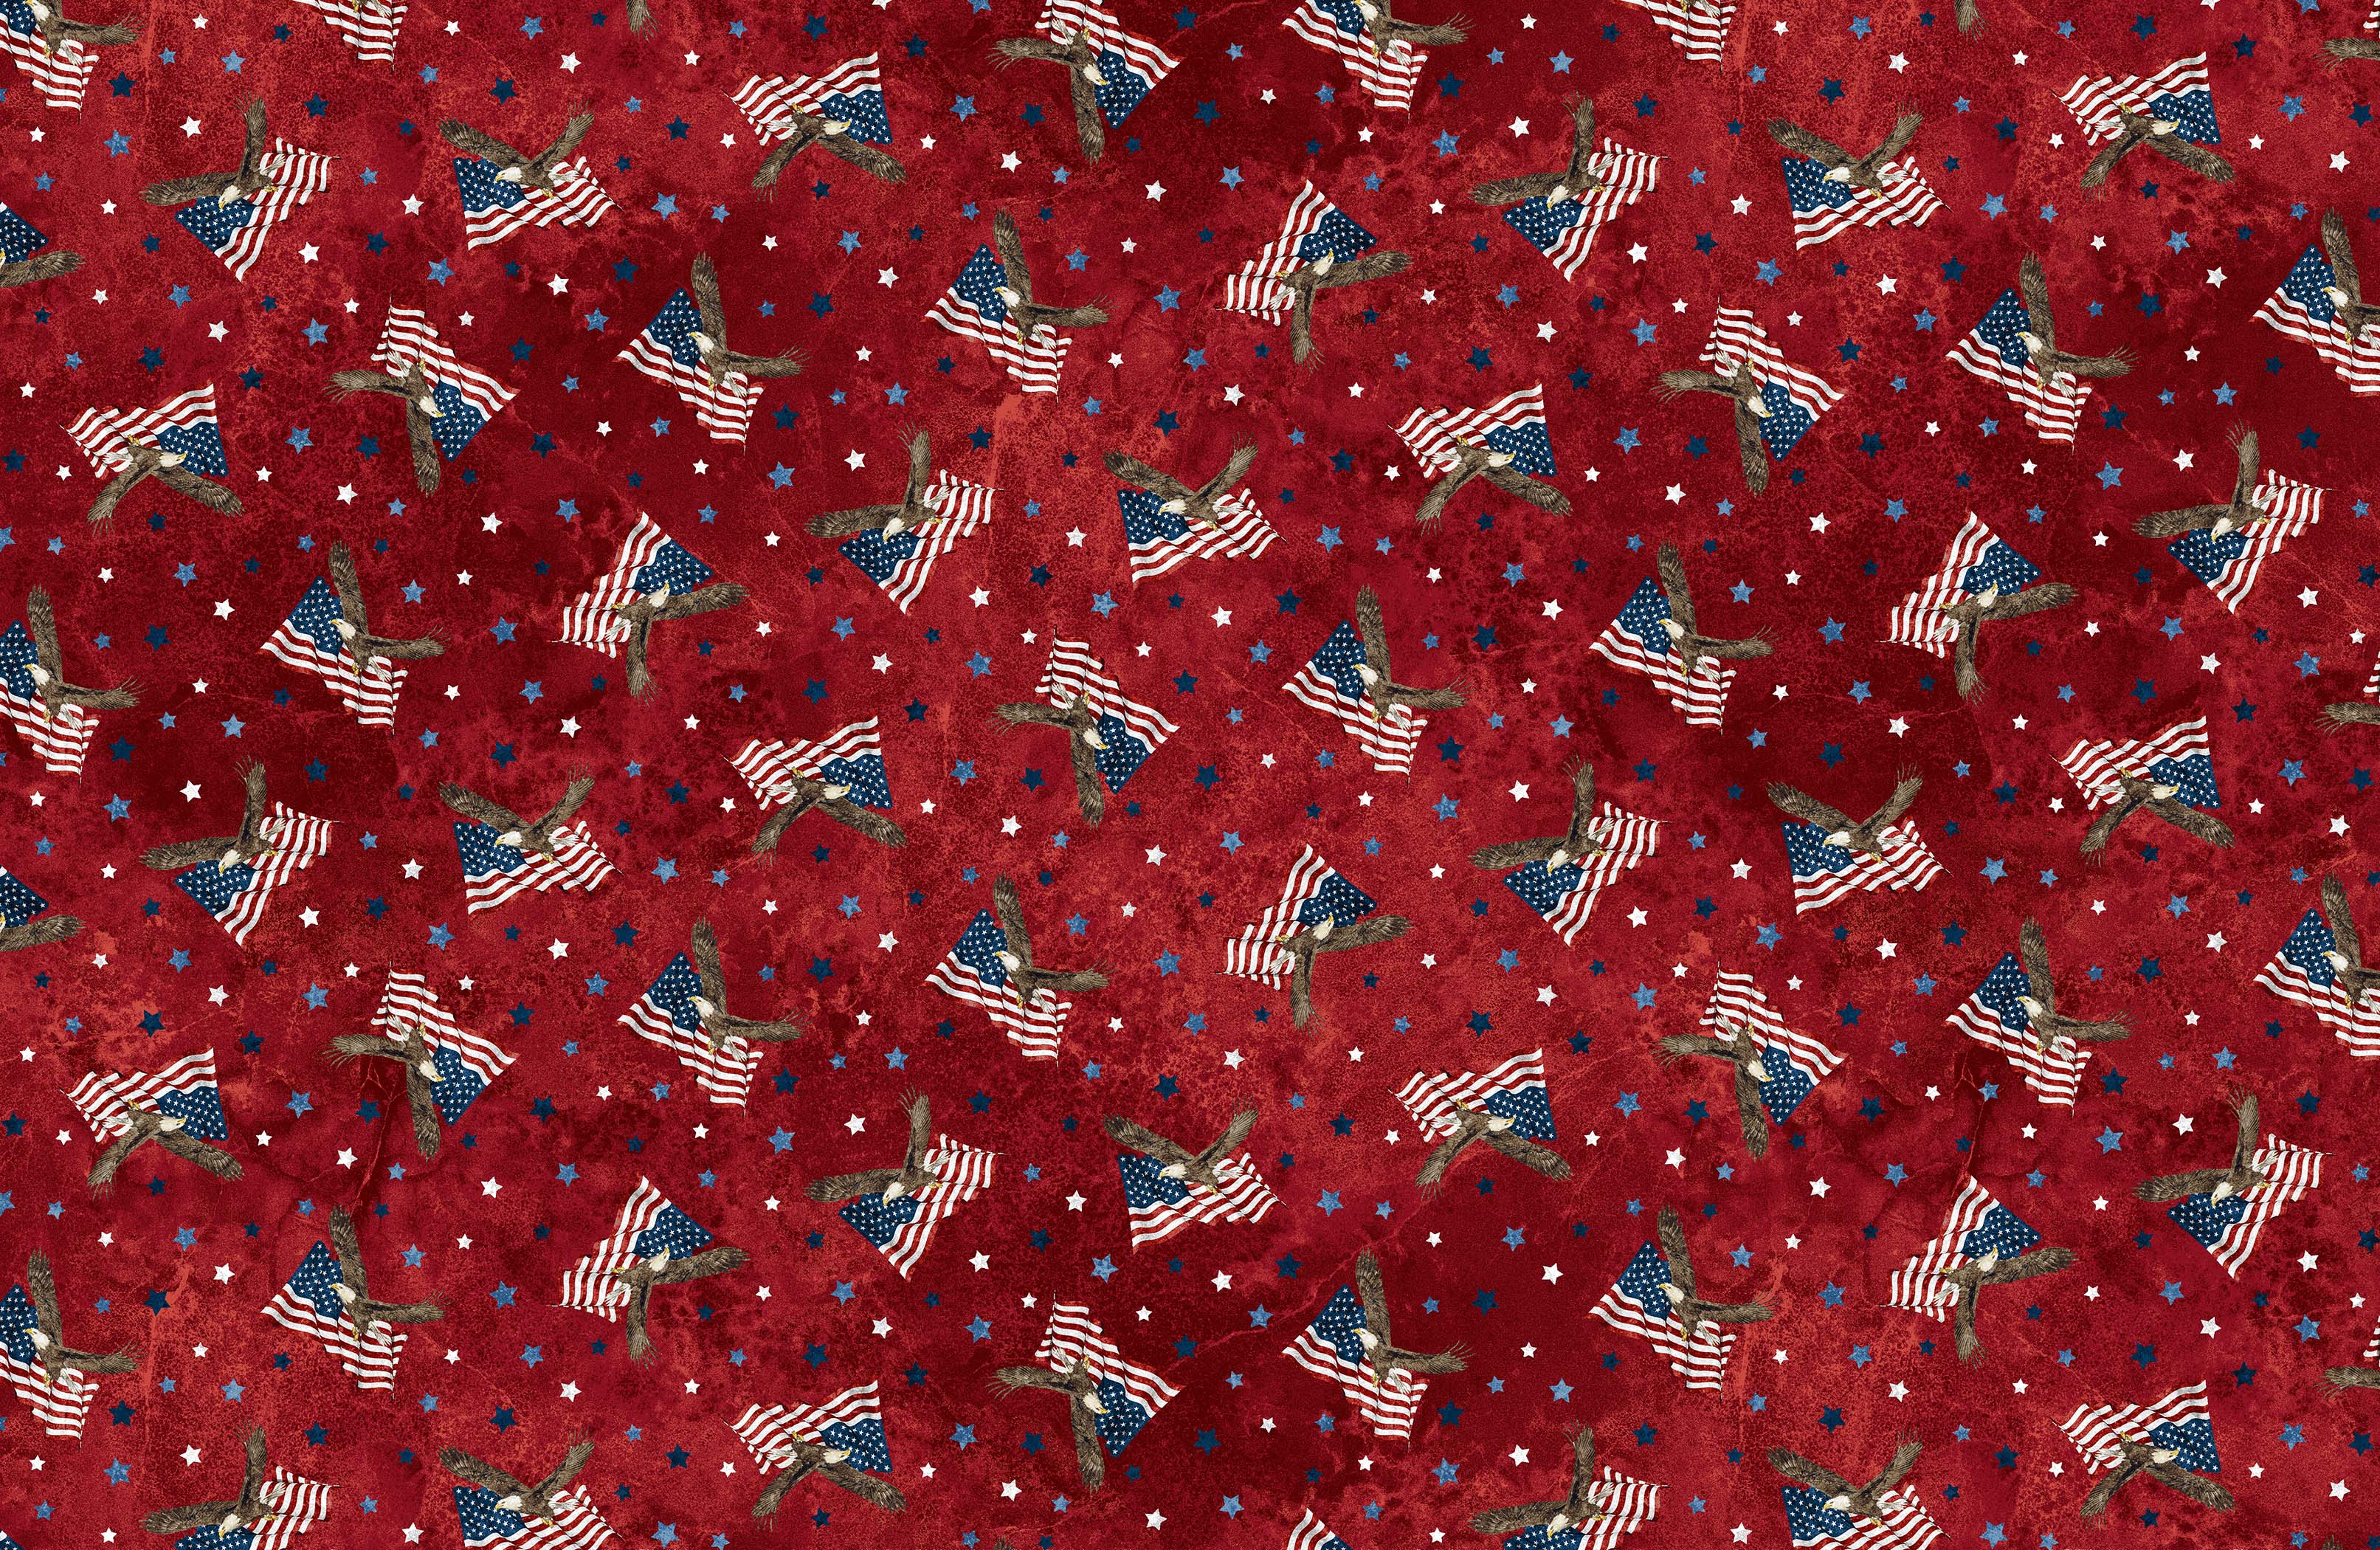 STONEHENGE STARS AND STRIPES 8 RED MULTI 23460-24